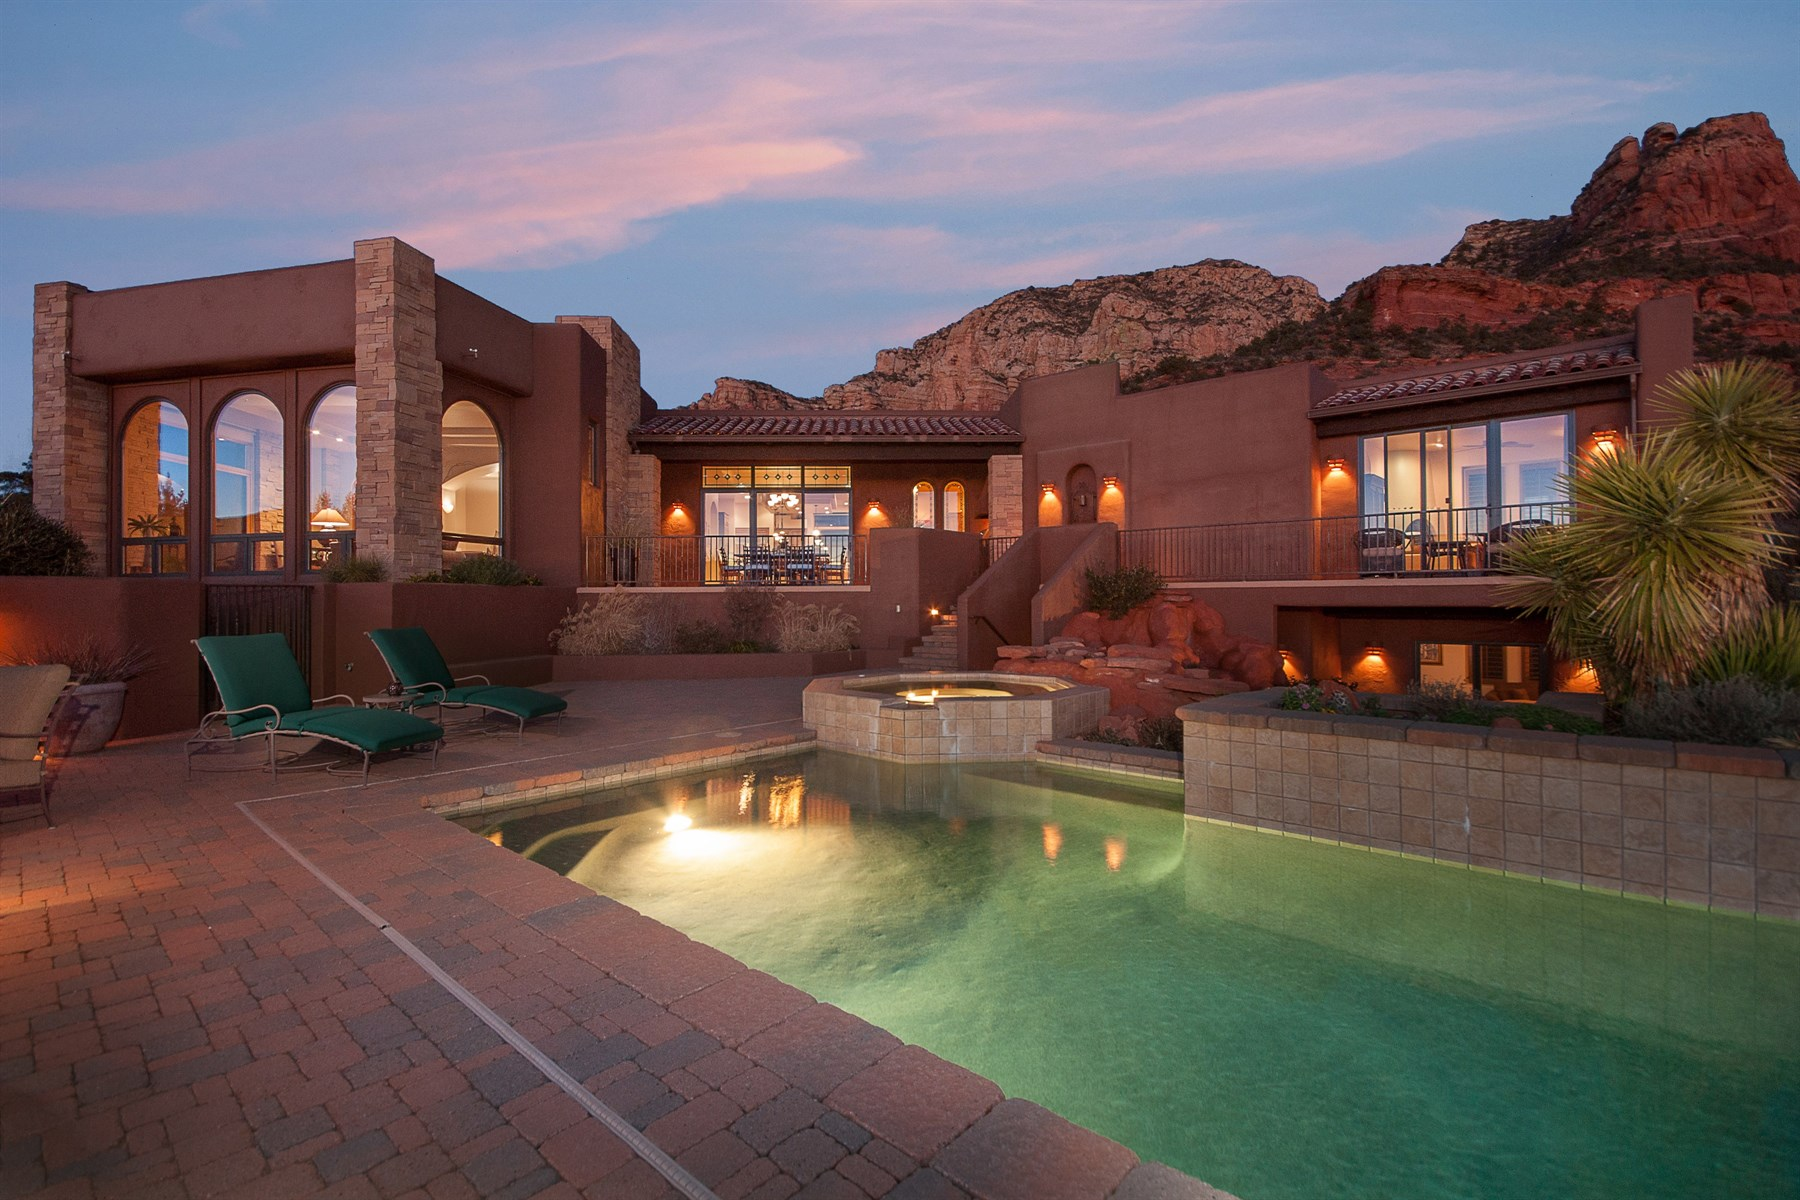 Single Family Home for Sale at Exquisite and private Contemporary Southwest home 20 Garnet Hill Dr Sedona, Arizona, 86336 United States